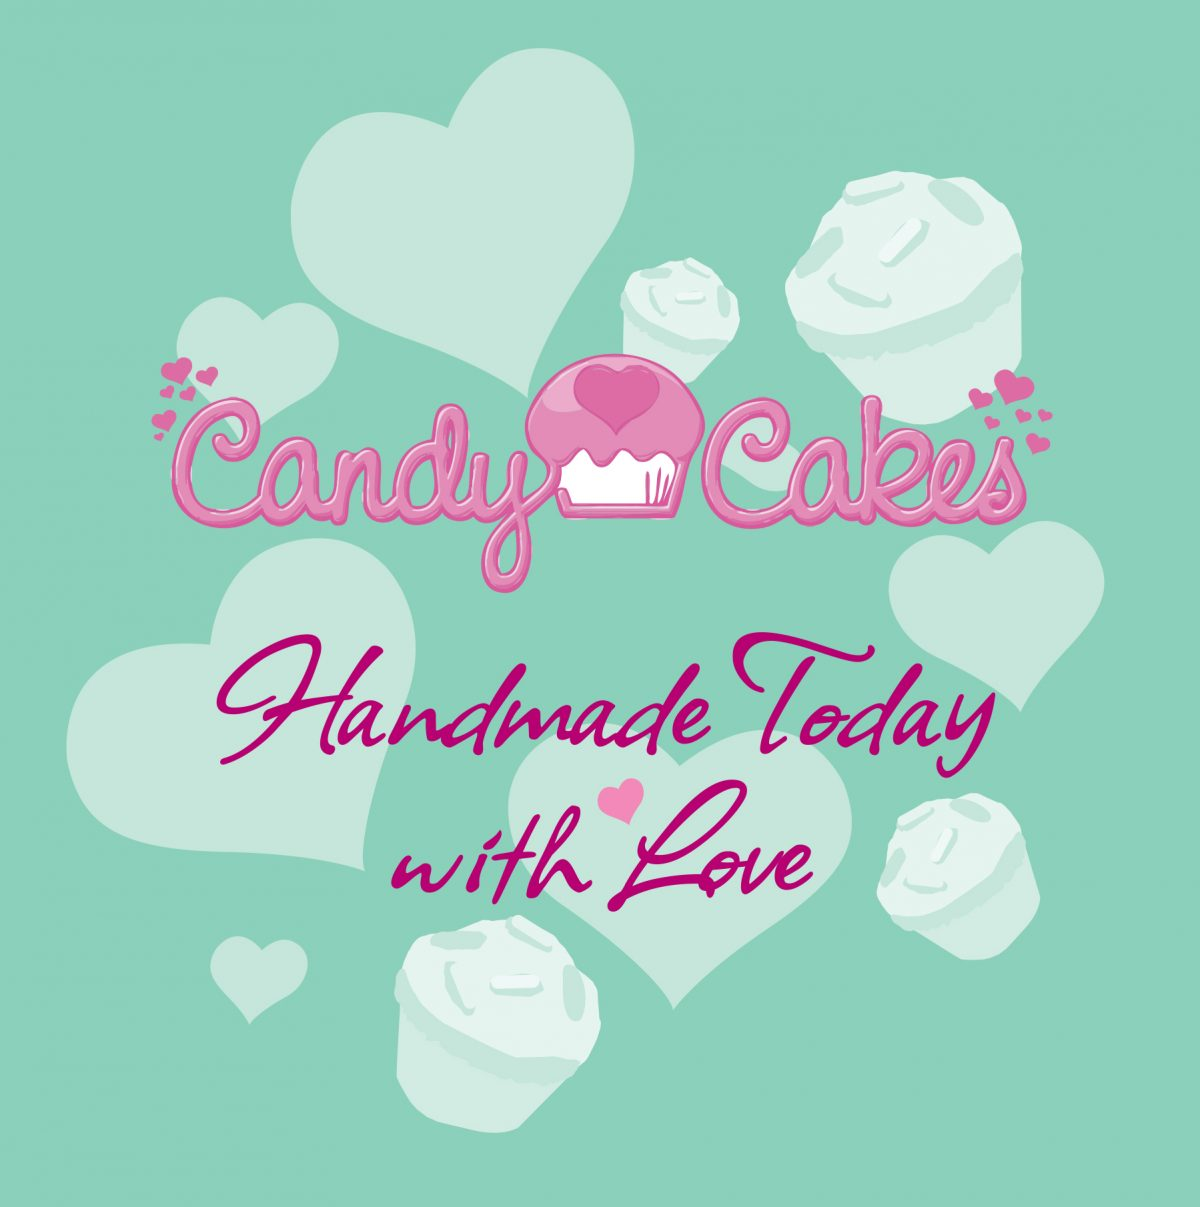 Candy Cakes Oct 2016 Sticker 76mm.indd